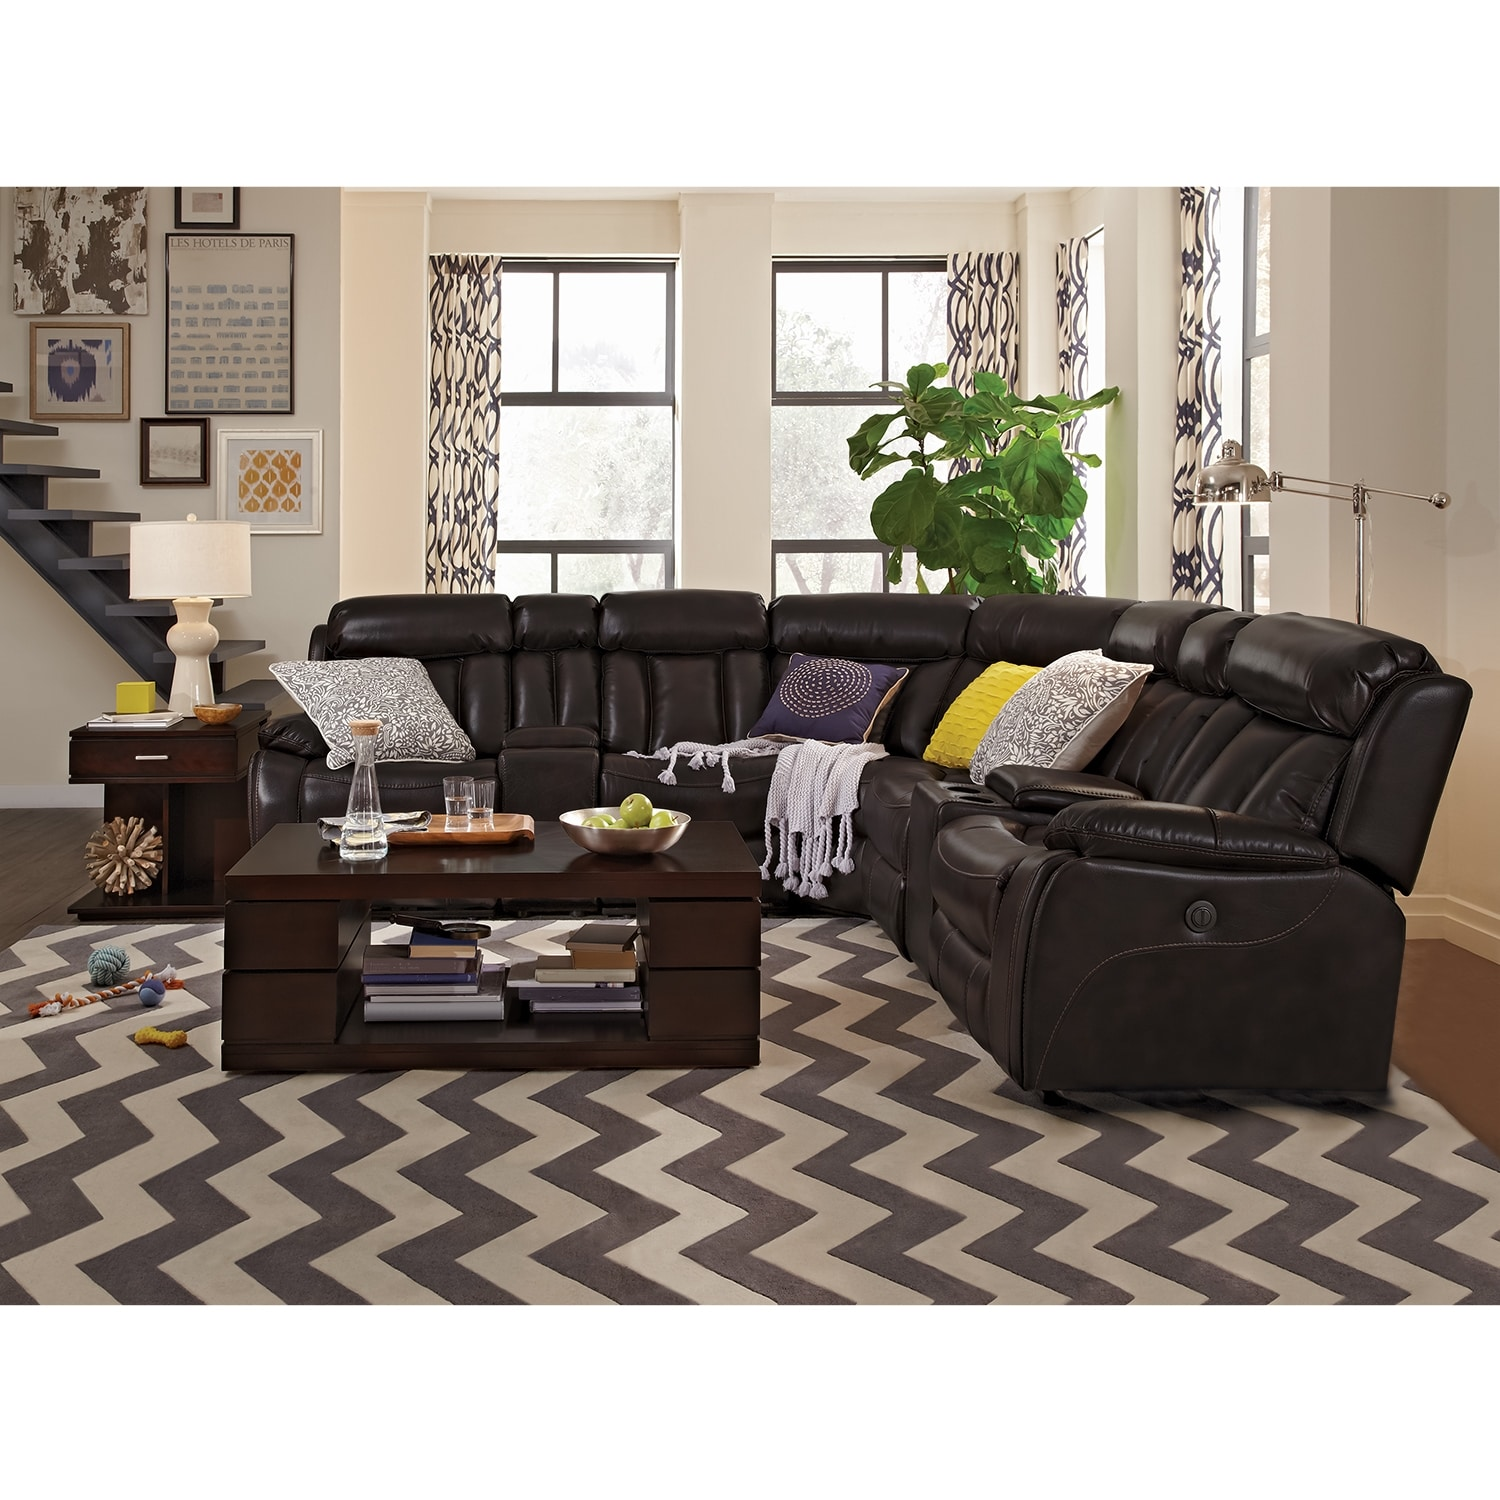 Sterling Gray Upholstered Casual Contemporary 7 Piece Room Group